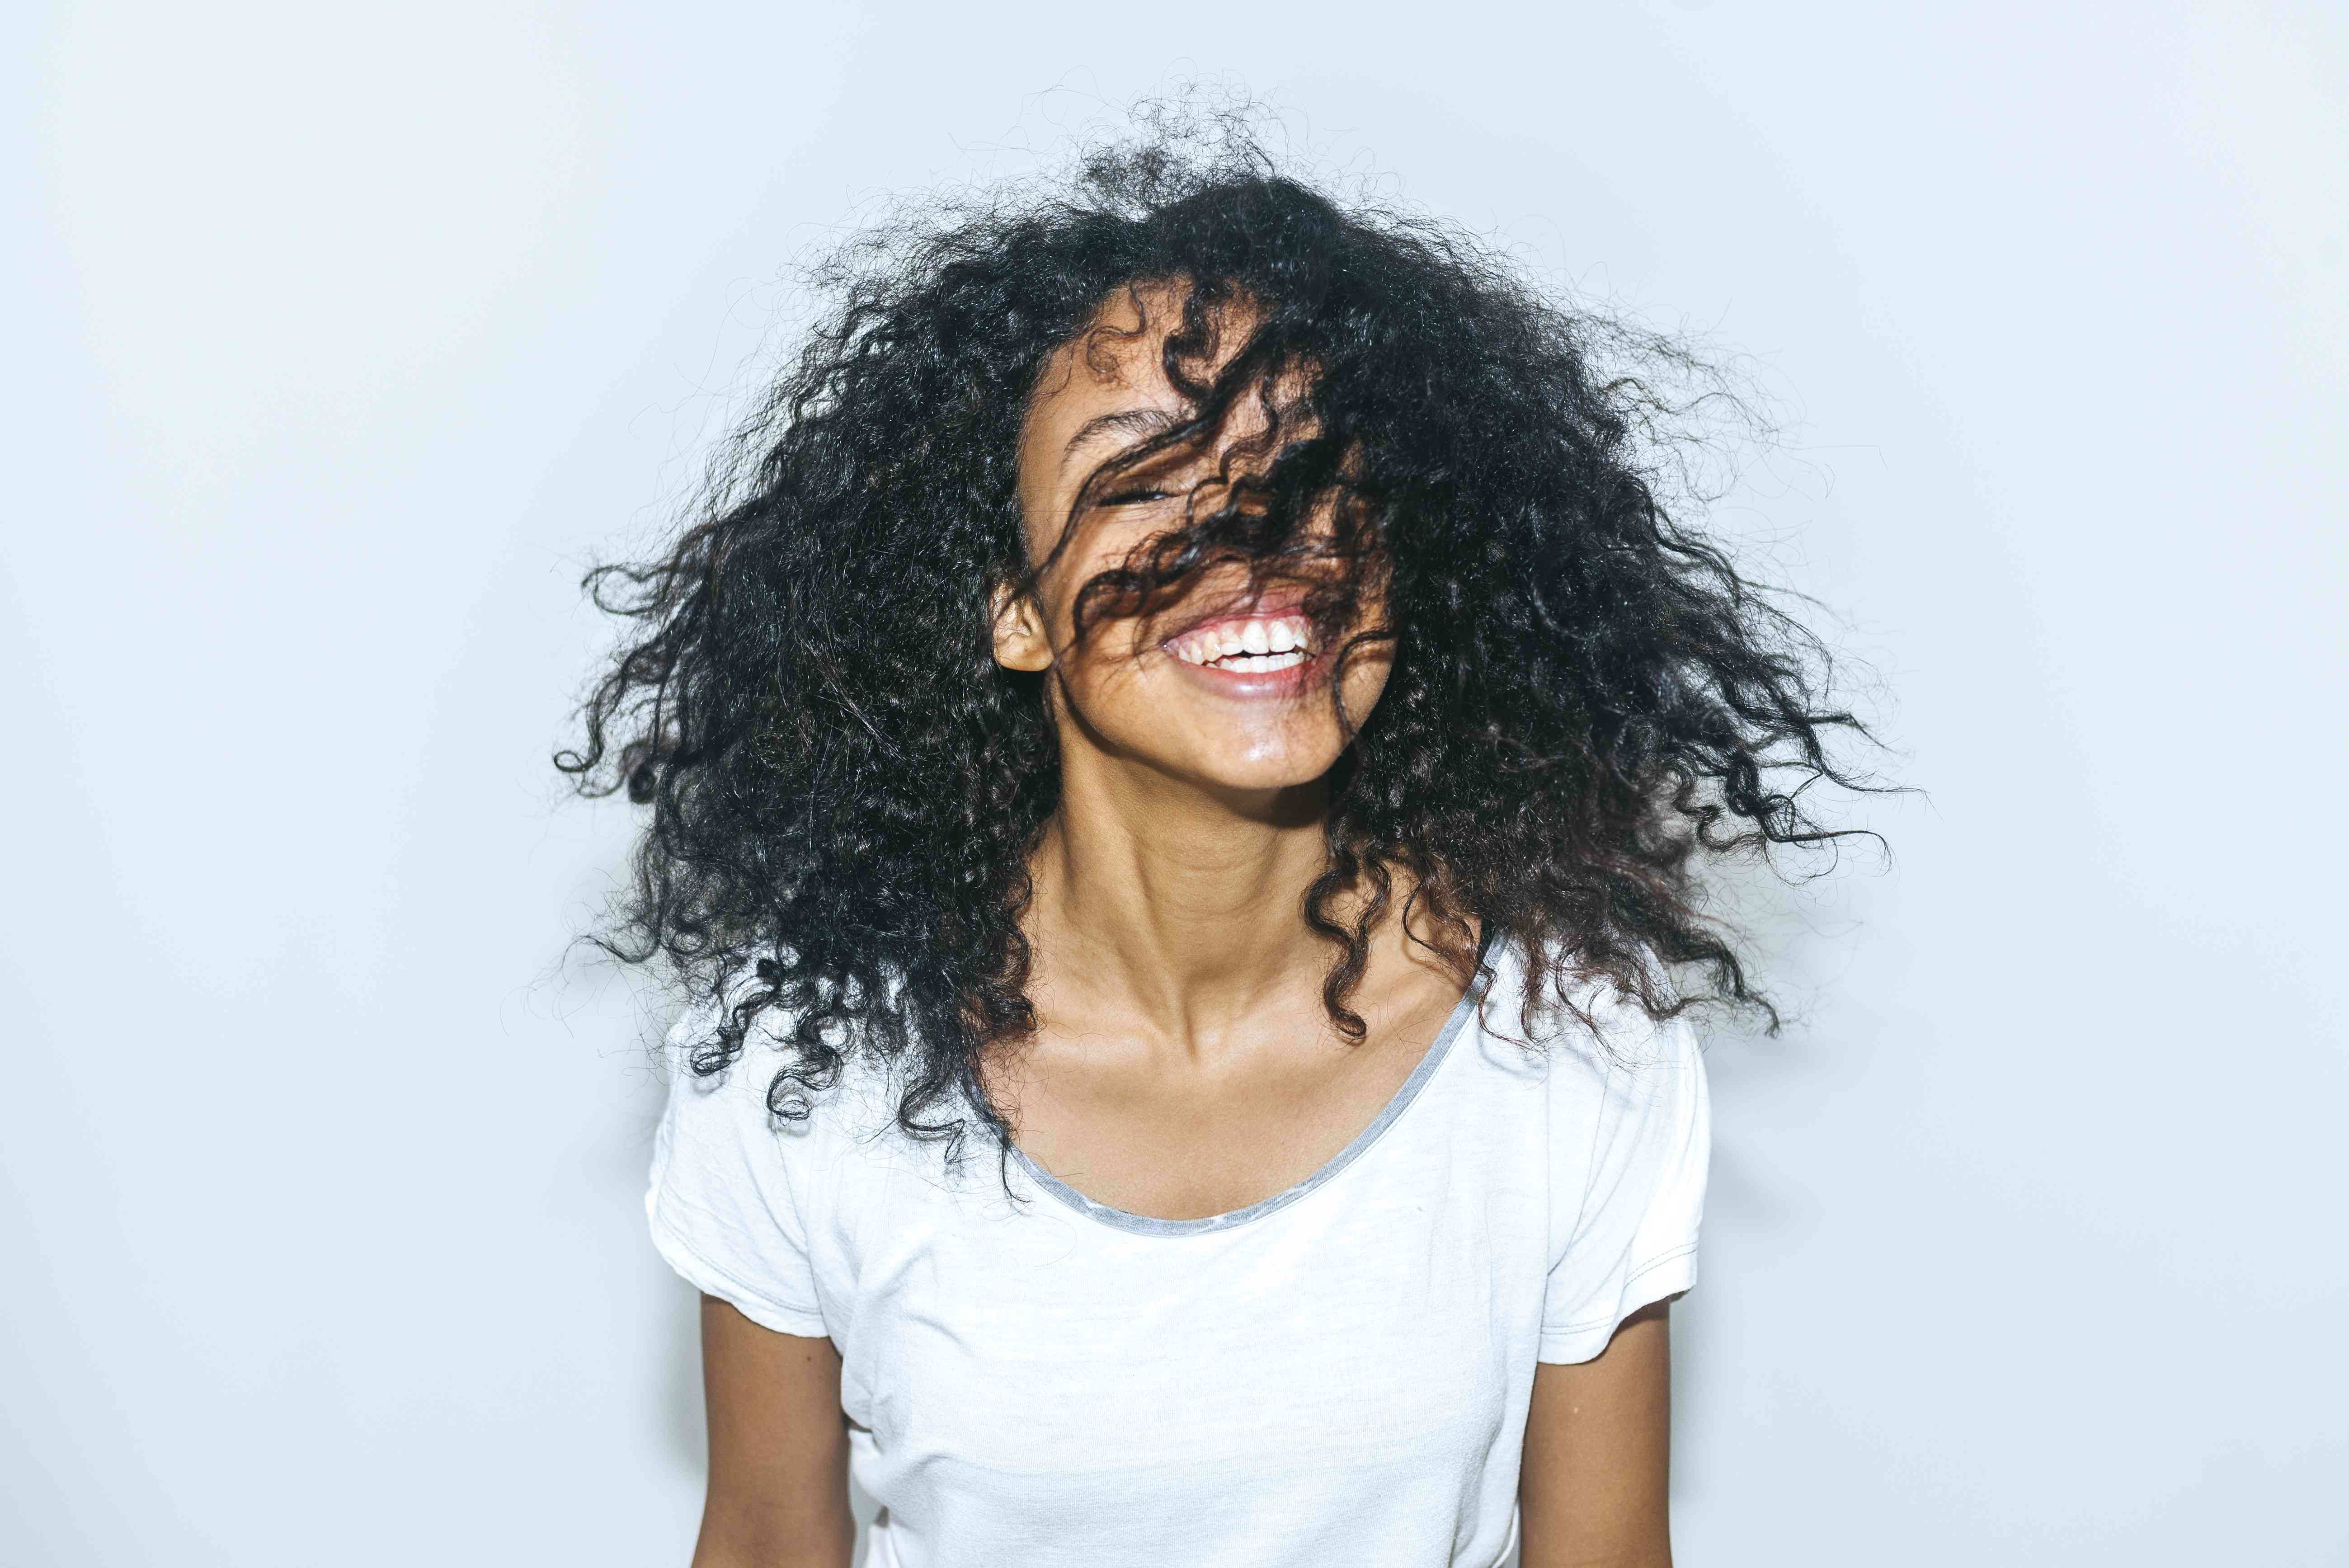 Redditors Swear By Baking Soda For Natural Hair Growth